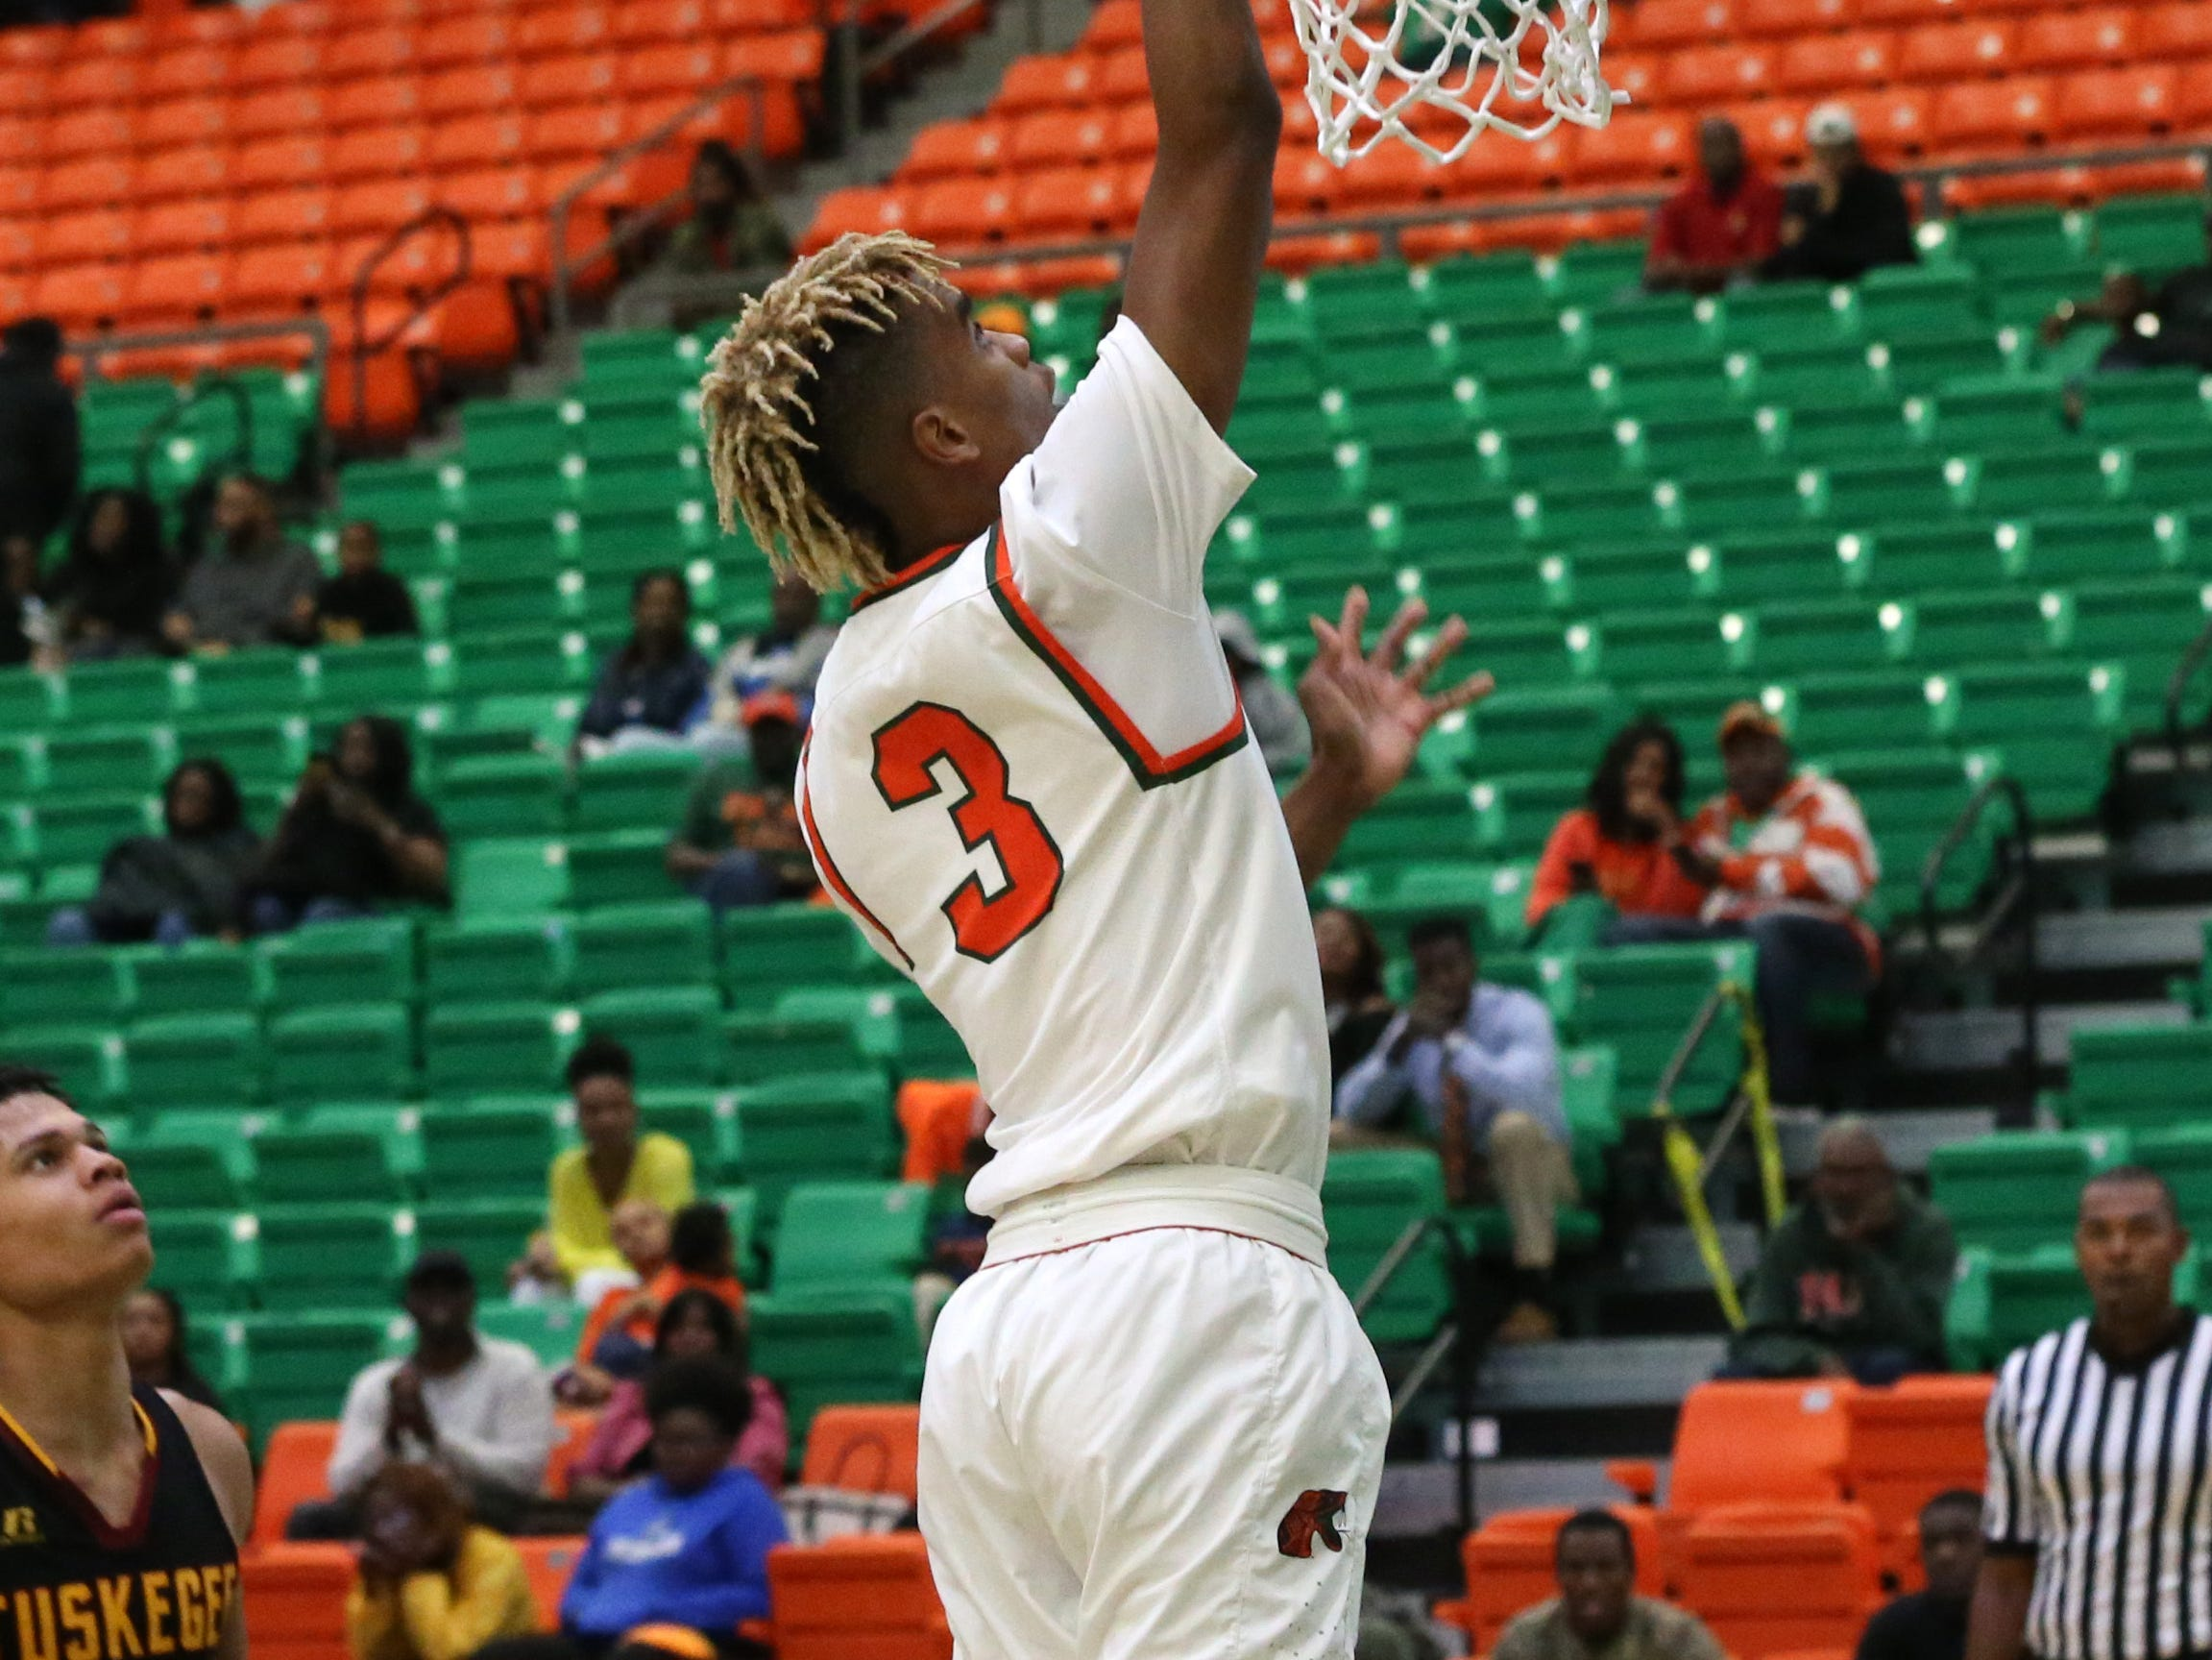 Florida A&M Rattlers guard MJ Randolph (3) makes a layup as the FAMU Rattlers take on the Tuskegee Golden Tigers in their first home game of the season in the Lawson Center, Saturday, Nov. 10, 2018.